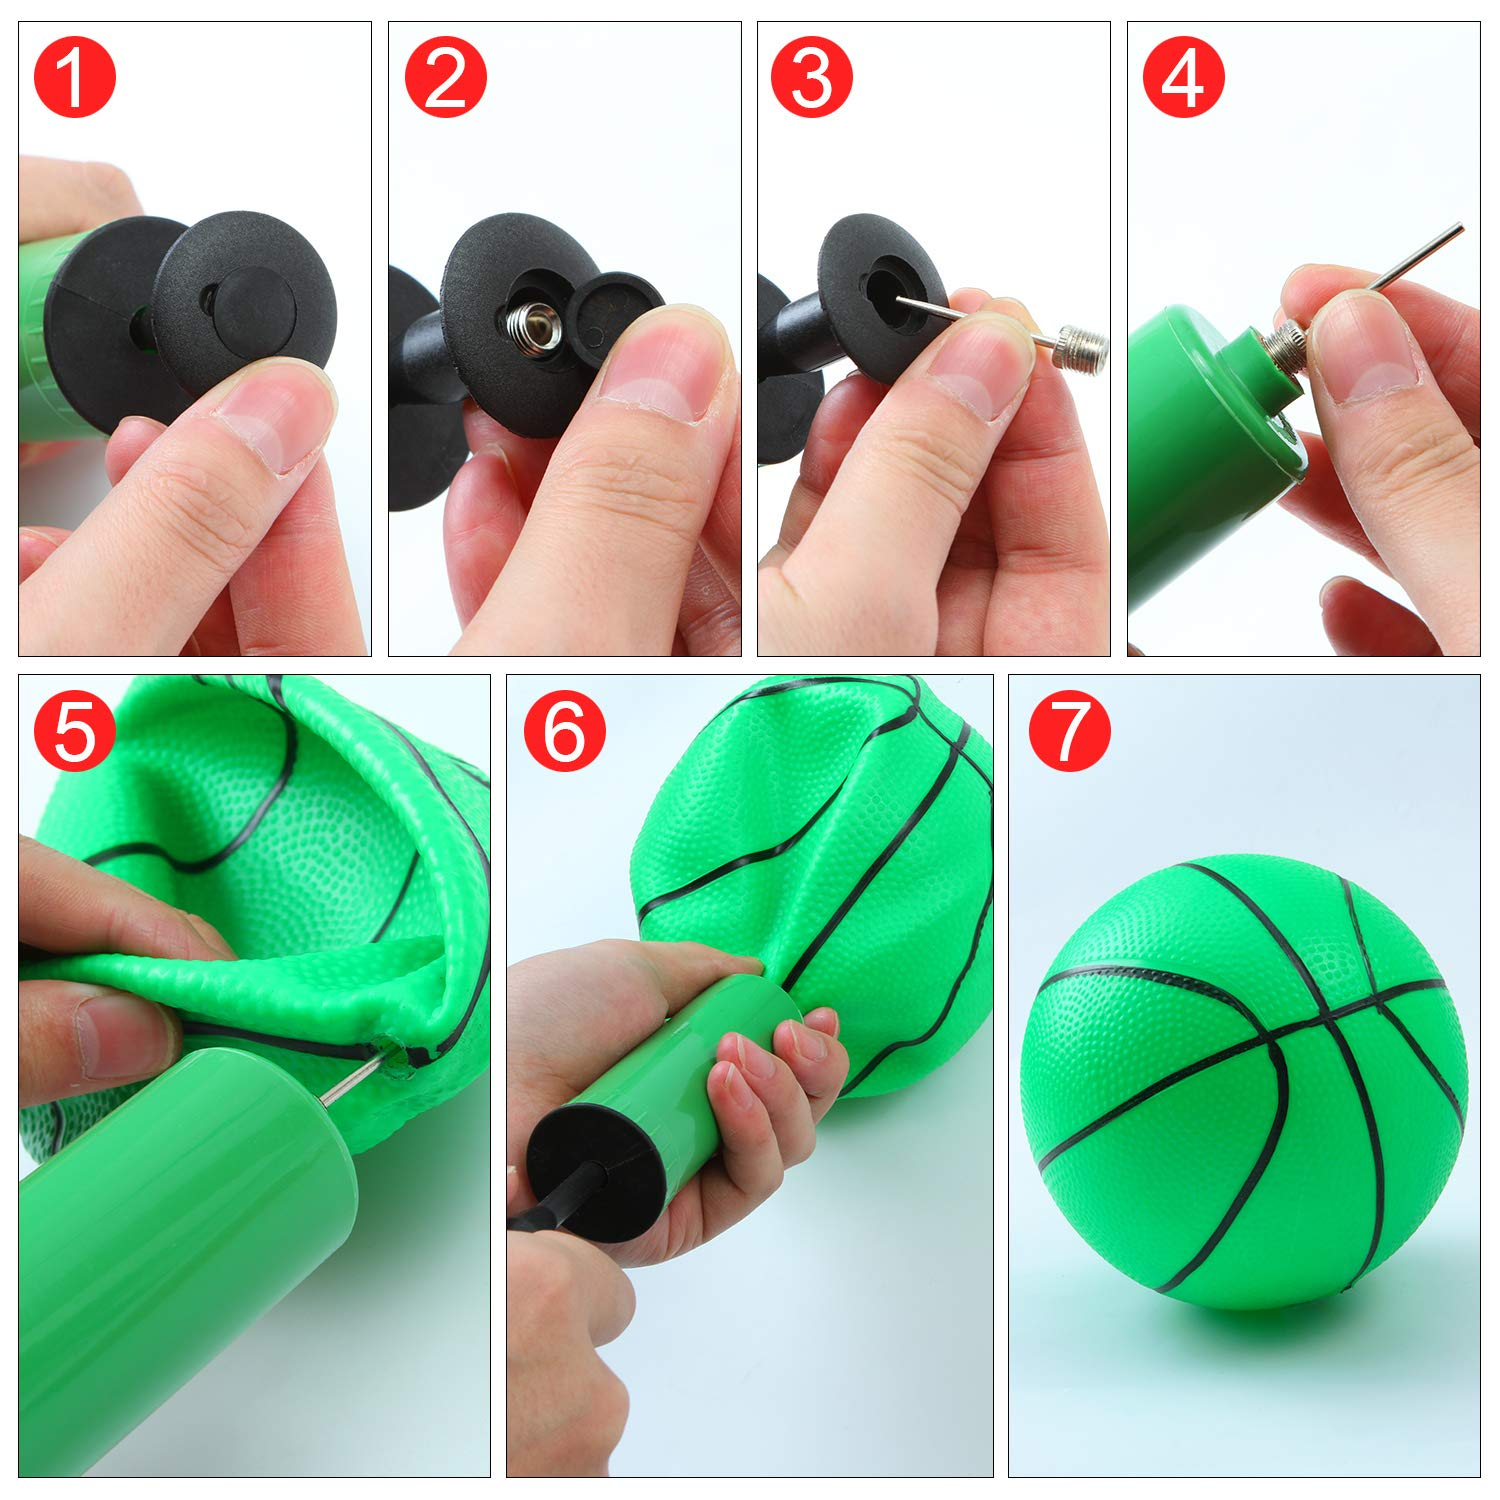 Aneco 6 Inch Mini Inflation Basketball Mini Basketball Toys Pool Game Basketballs with Inflation Pump for Kids 4 Pieces